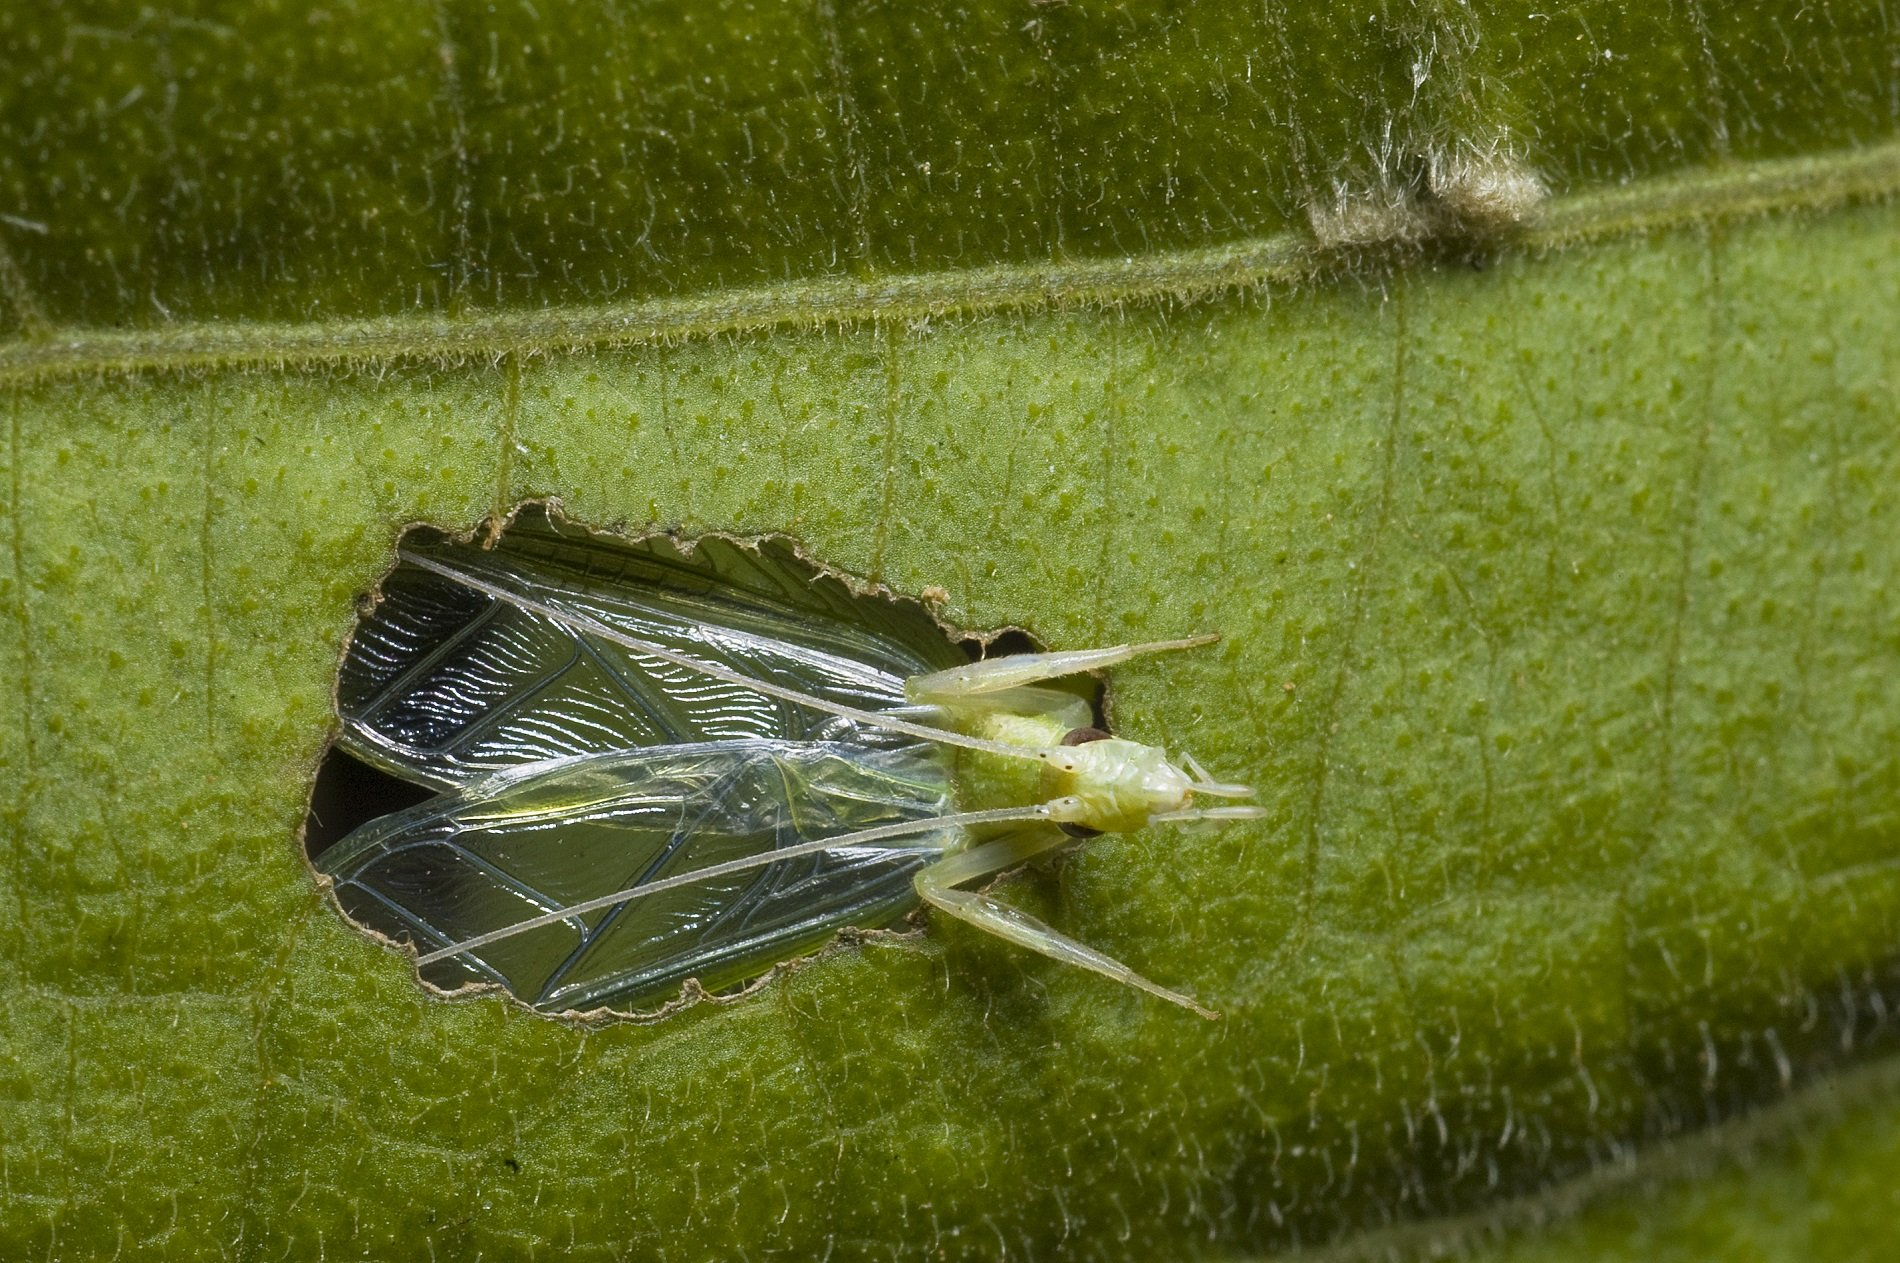 Tree crickets turn leaves into baffles to make themselves sound louder by making a hole in the centre.